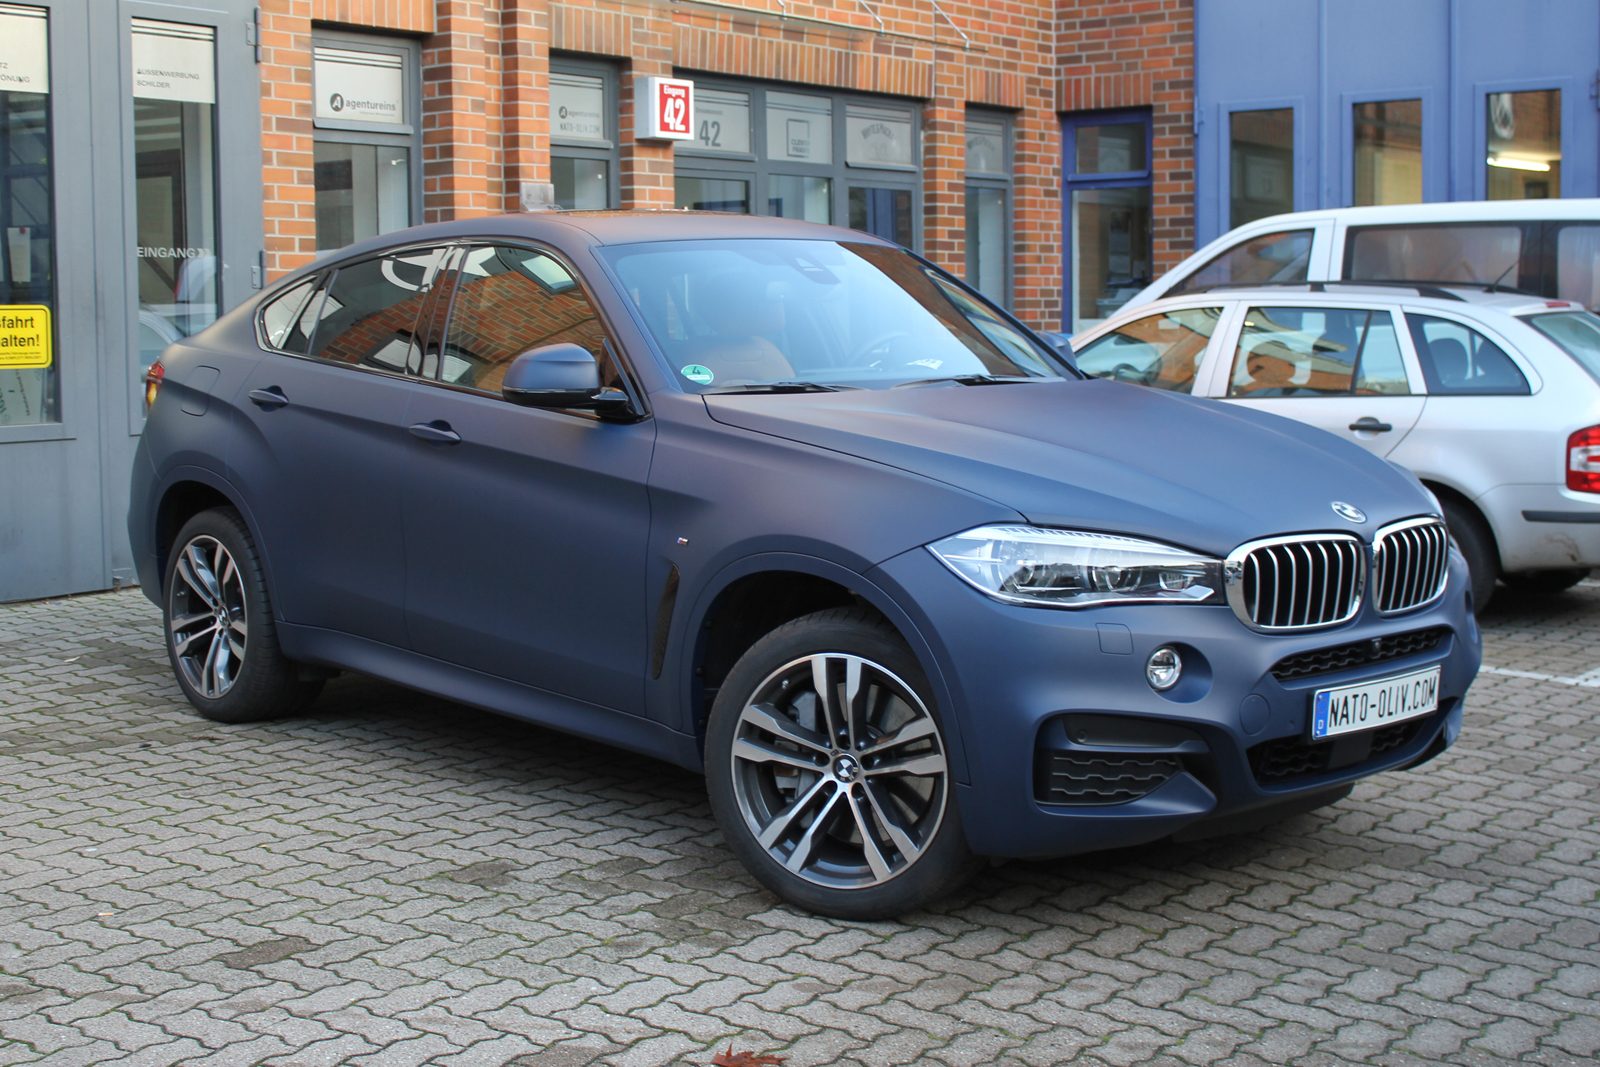 BMW_X6_CAR-WRAPPING_YACHTBLAU_MATT_02